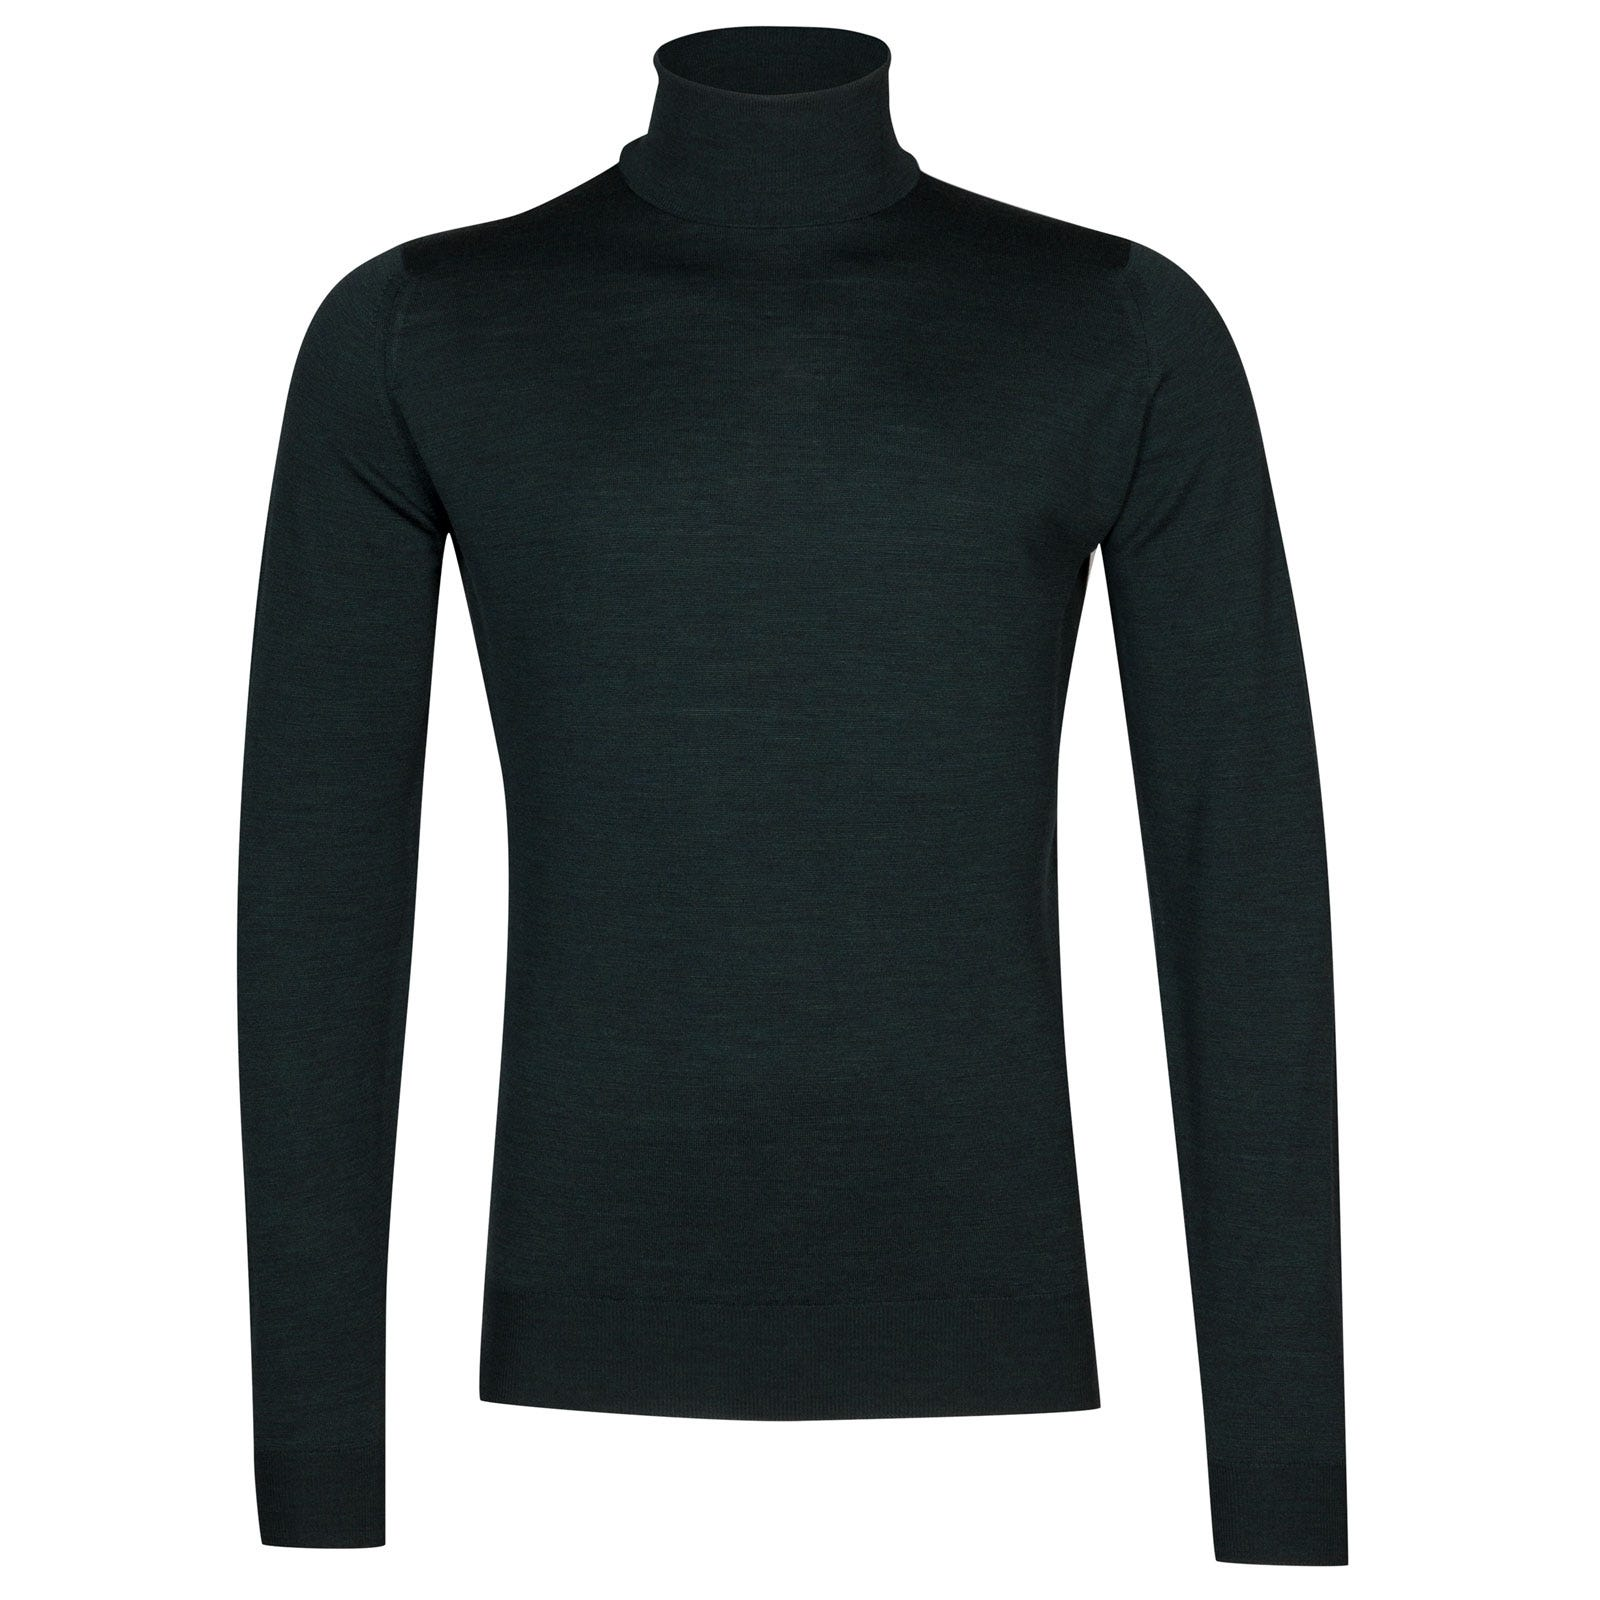 John Smedley Cherwell Merino Wool Pullover in Racing Green-S